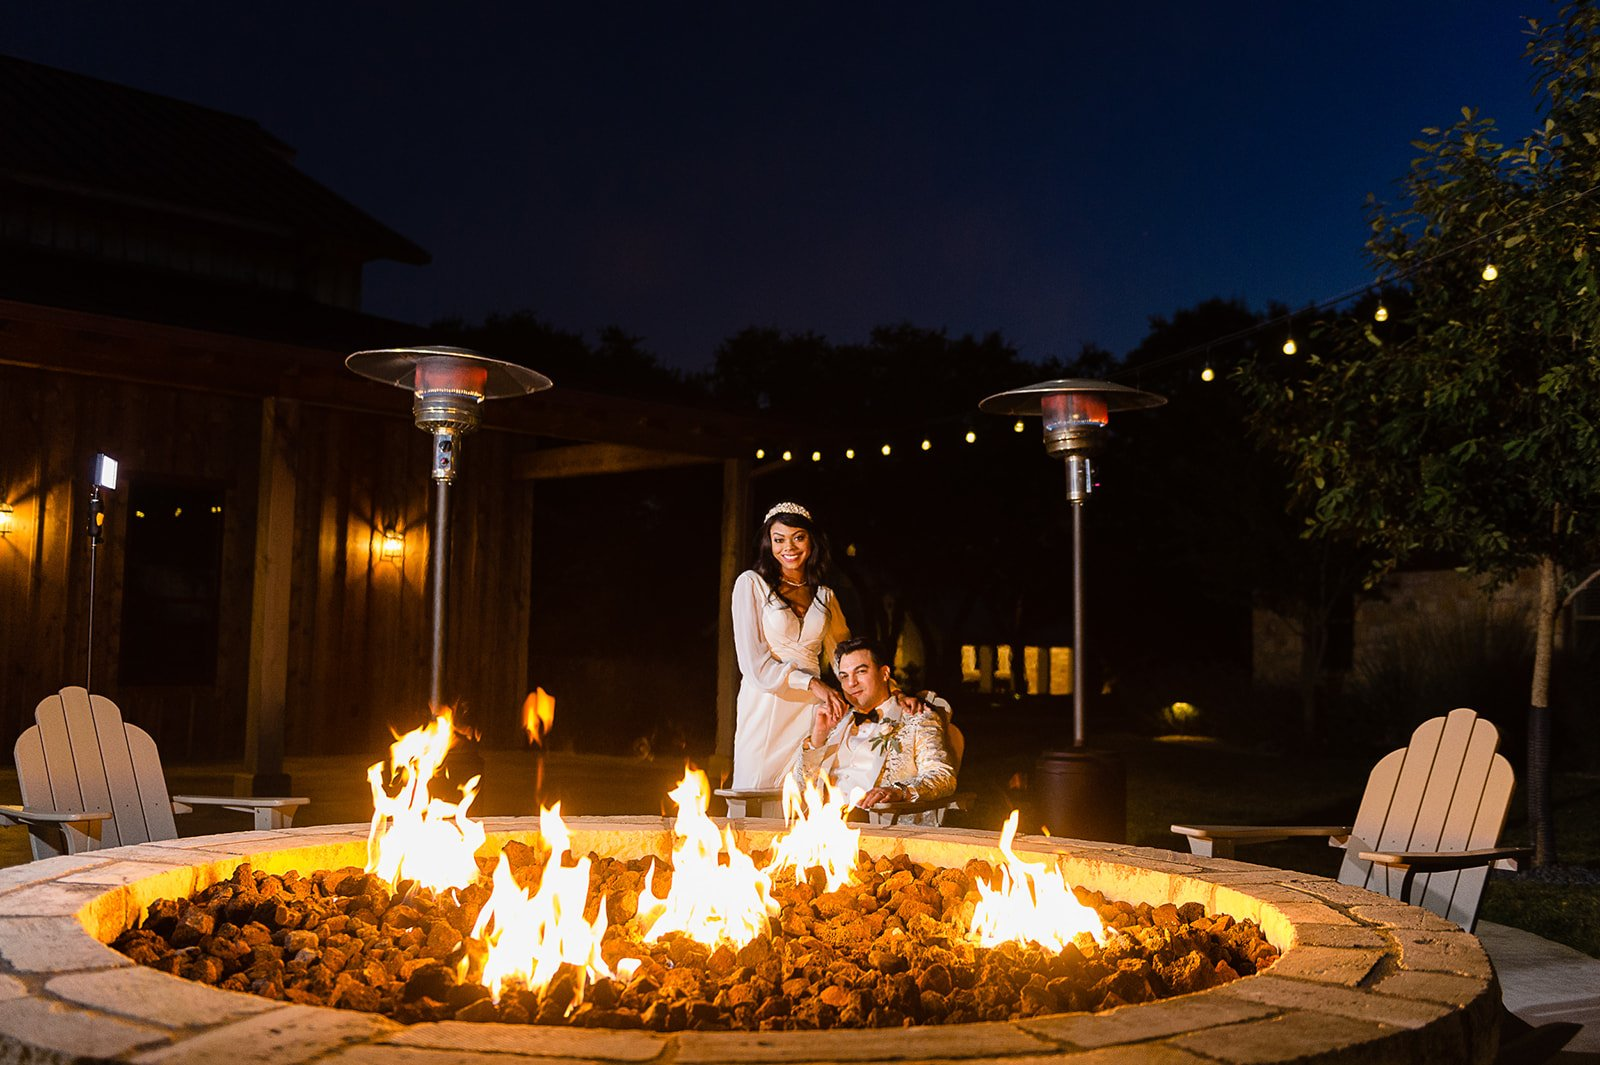 married couple at wedding sitting by firepit